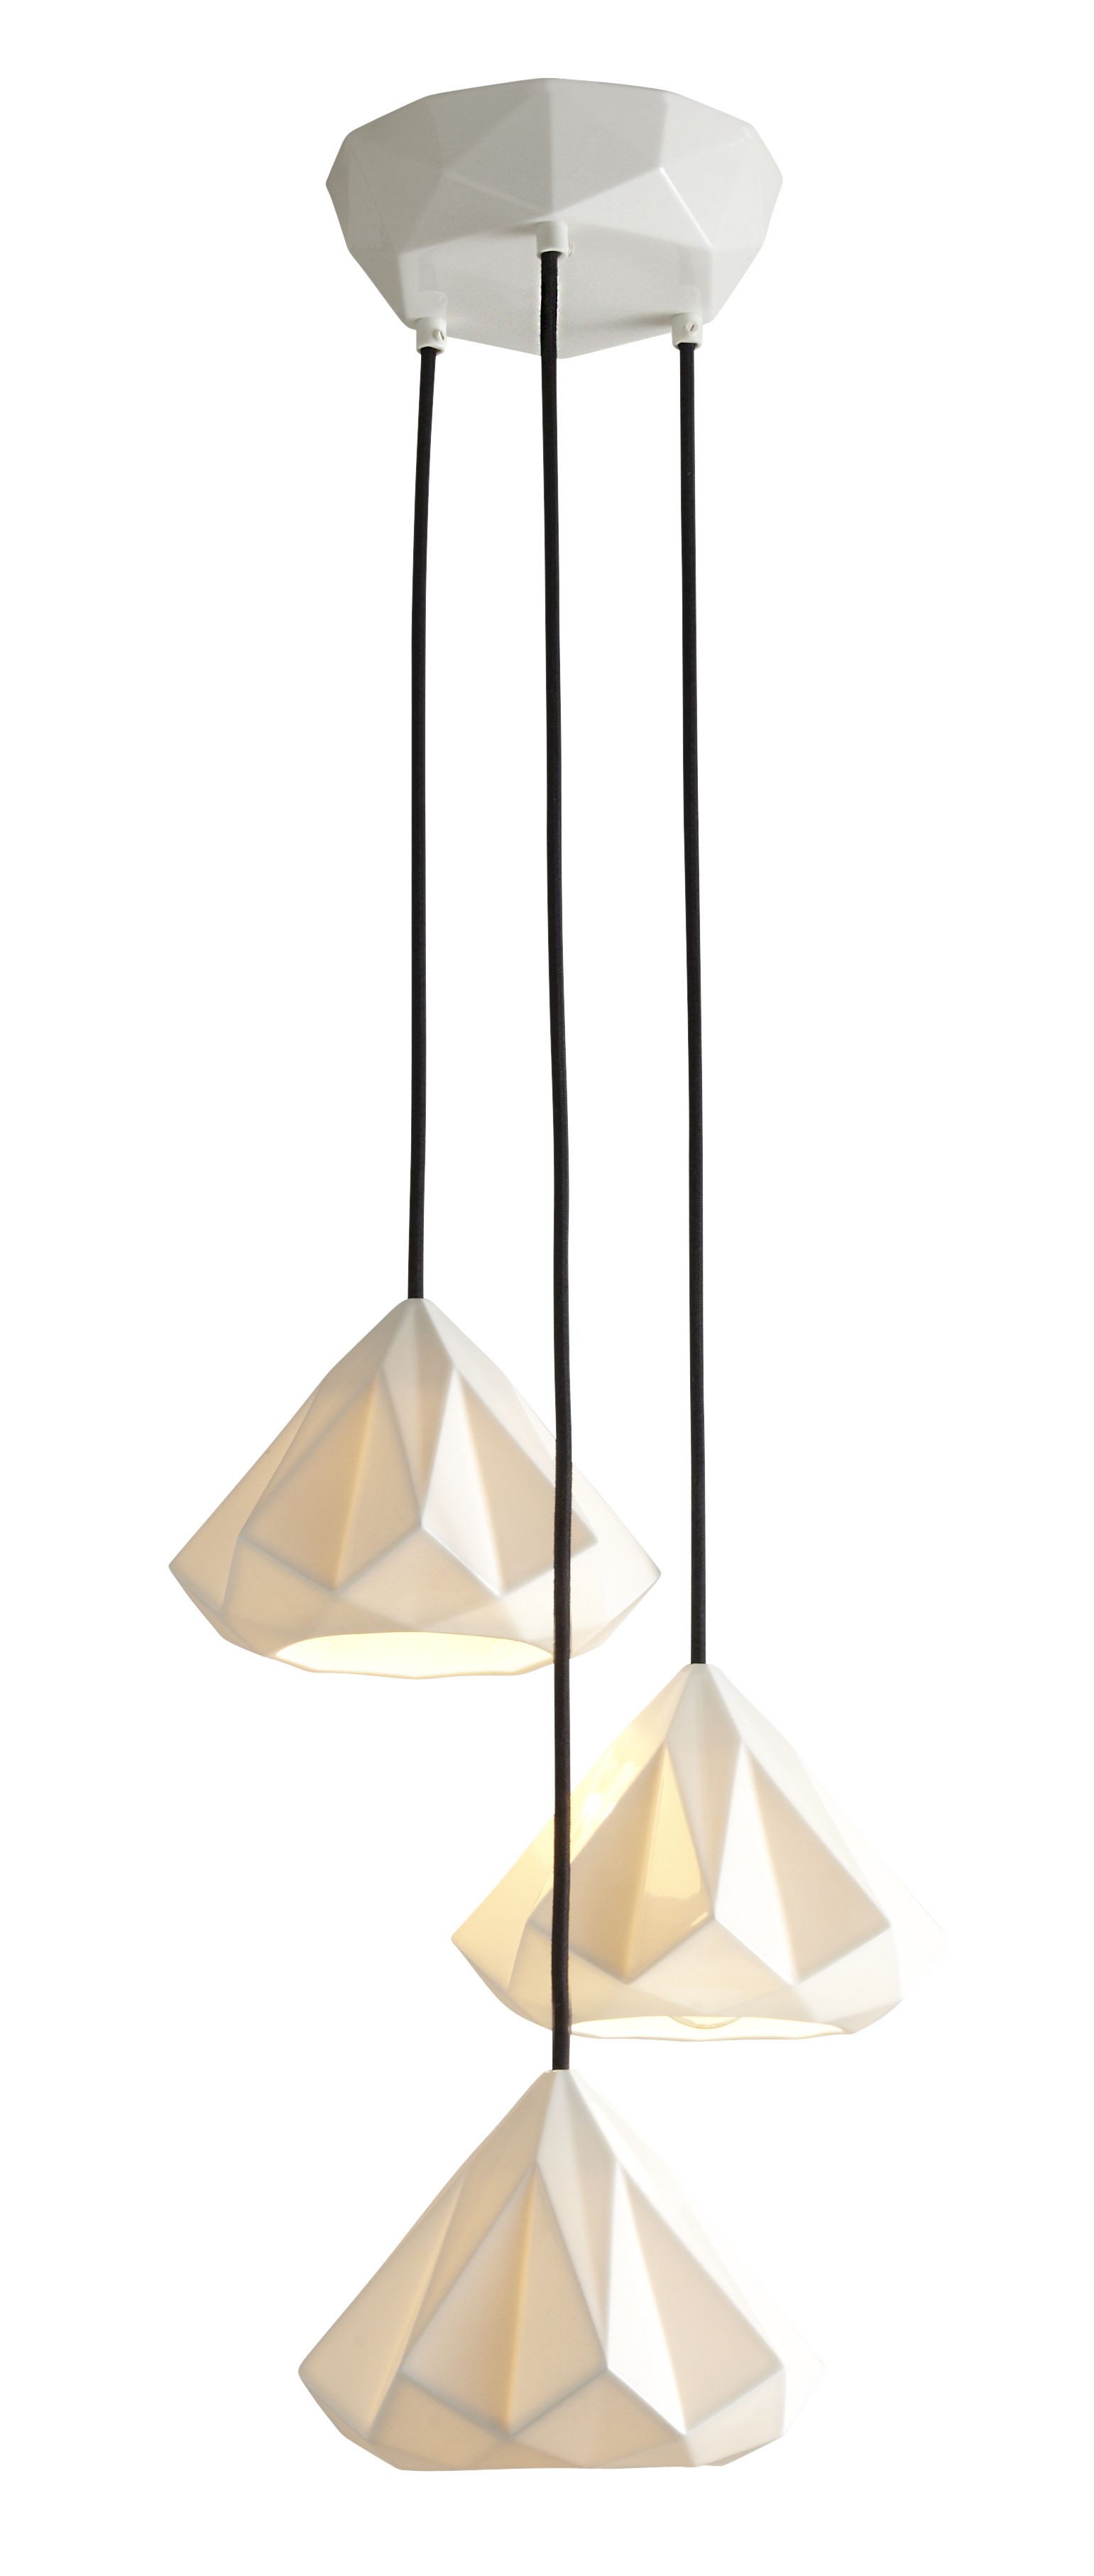 Luminaire - Suspensions - Suspension Hatton 1 / Set 3 abat-jours - Porcelaine - Original BTC - Porcelaine blanche - Porcelaine